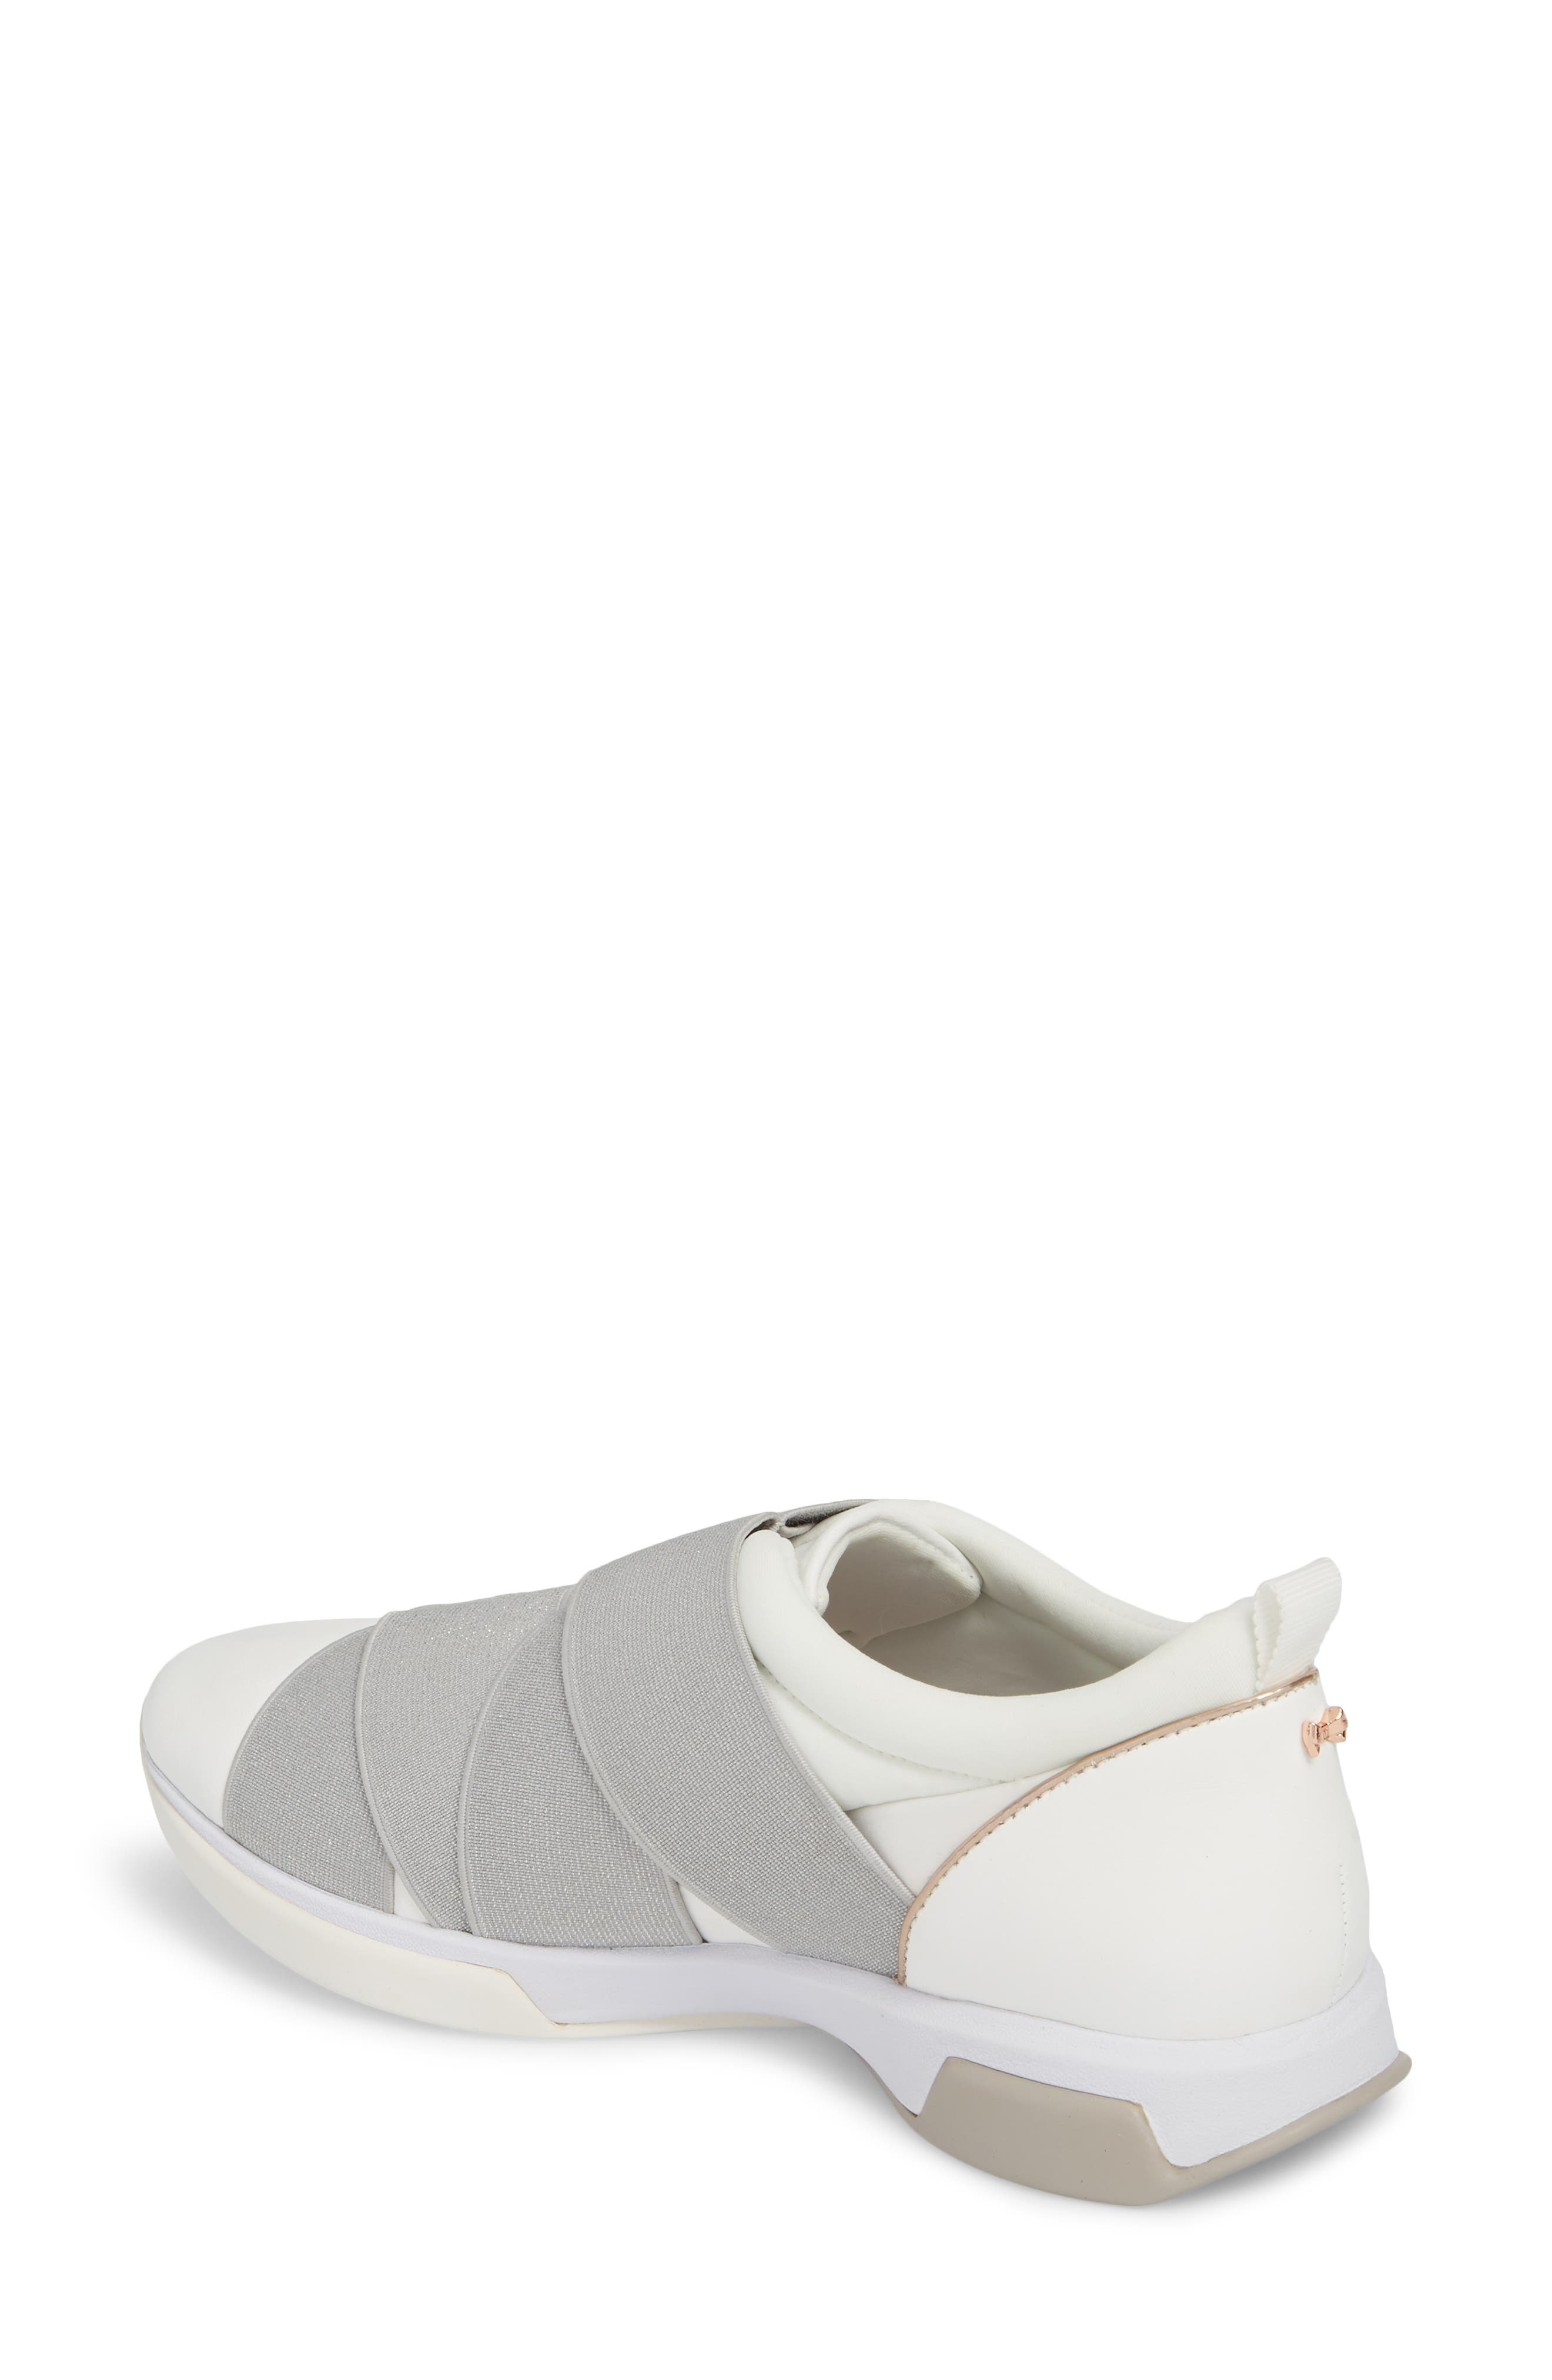 TED BAKER LONDON, Queane Sneaker, Alternate thumbnail 2, color, WHITE/ SILVER LEATHER